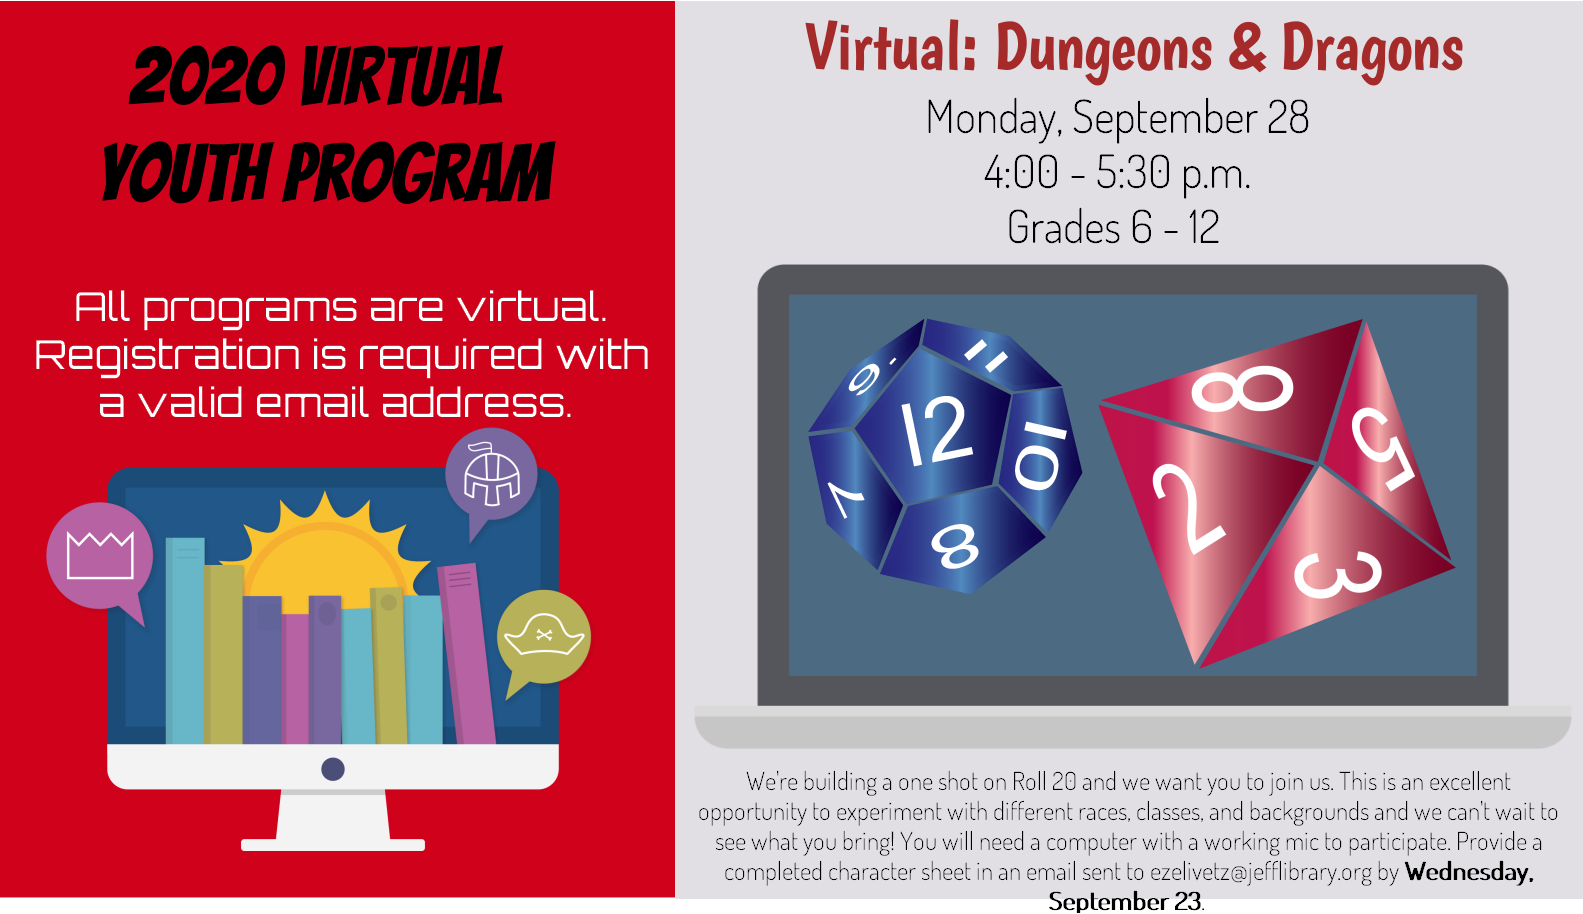 Virtual: Dungeons and Dragons